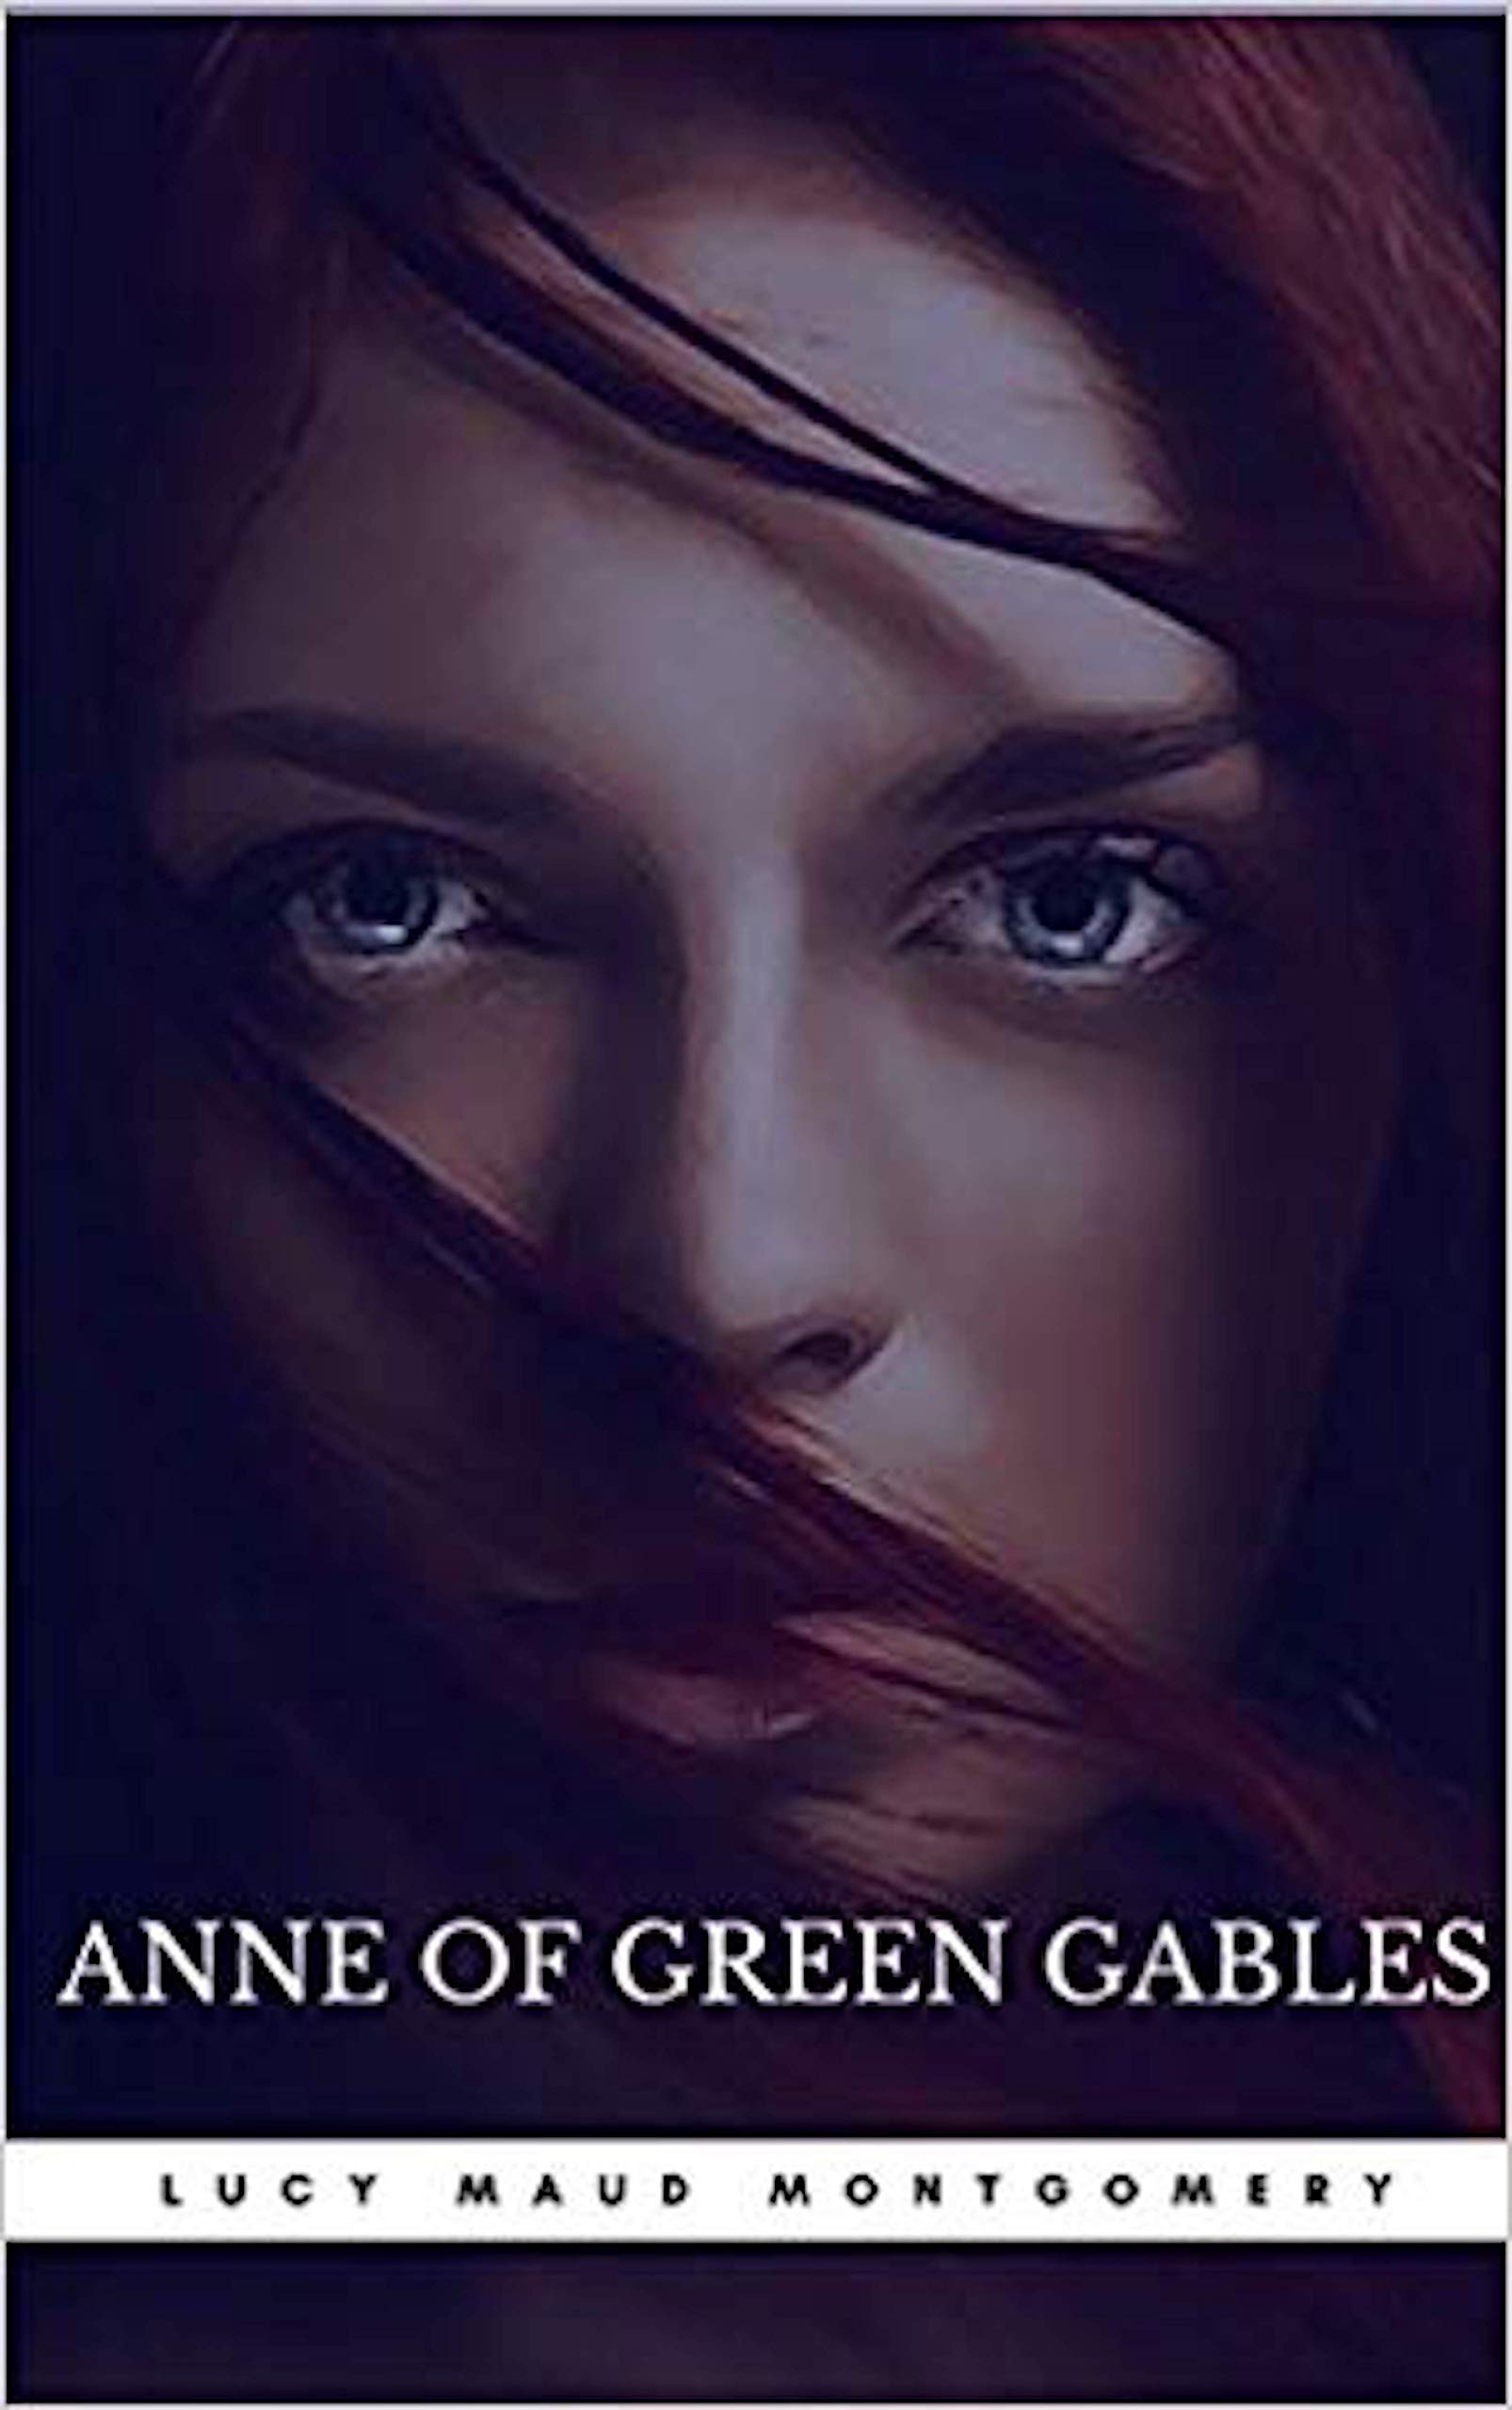 Ebook Pdf Anne Of Green Gables Anne Shirley Series 1 By Pdf Epub Mobi Ebook Hwhmoauoh Ksenmsrbhhxesvt